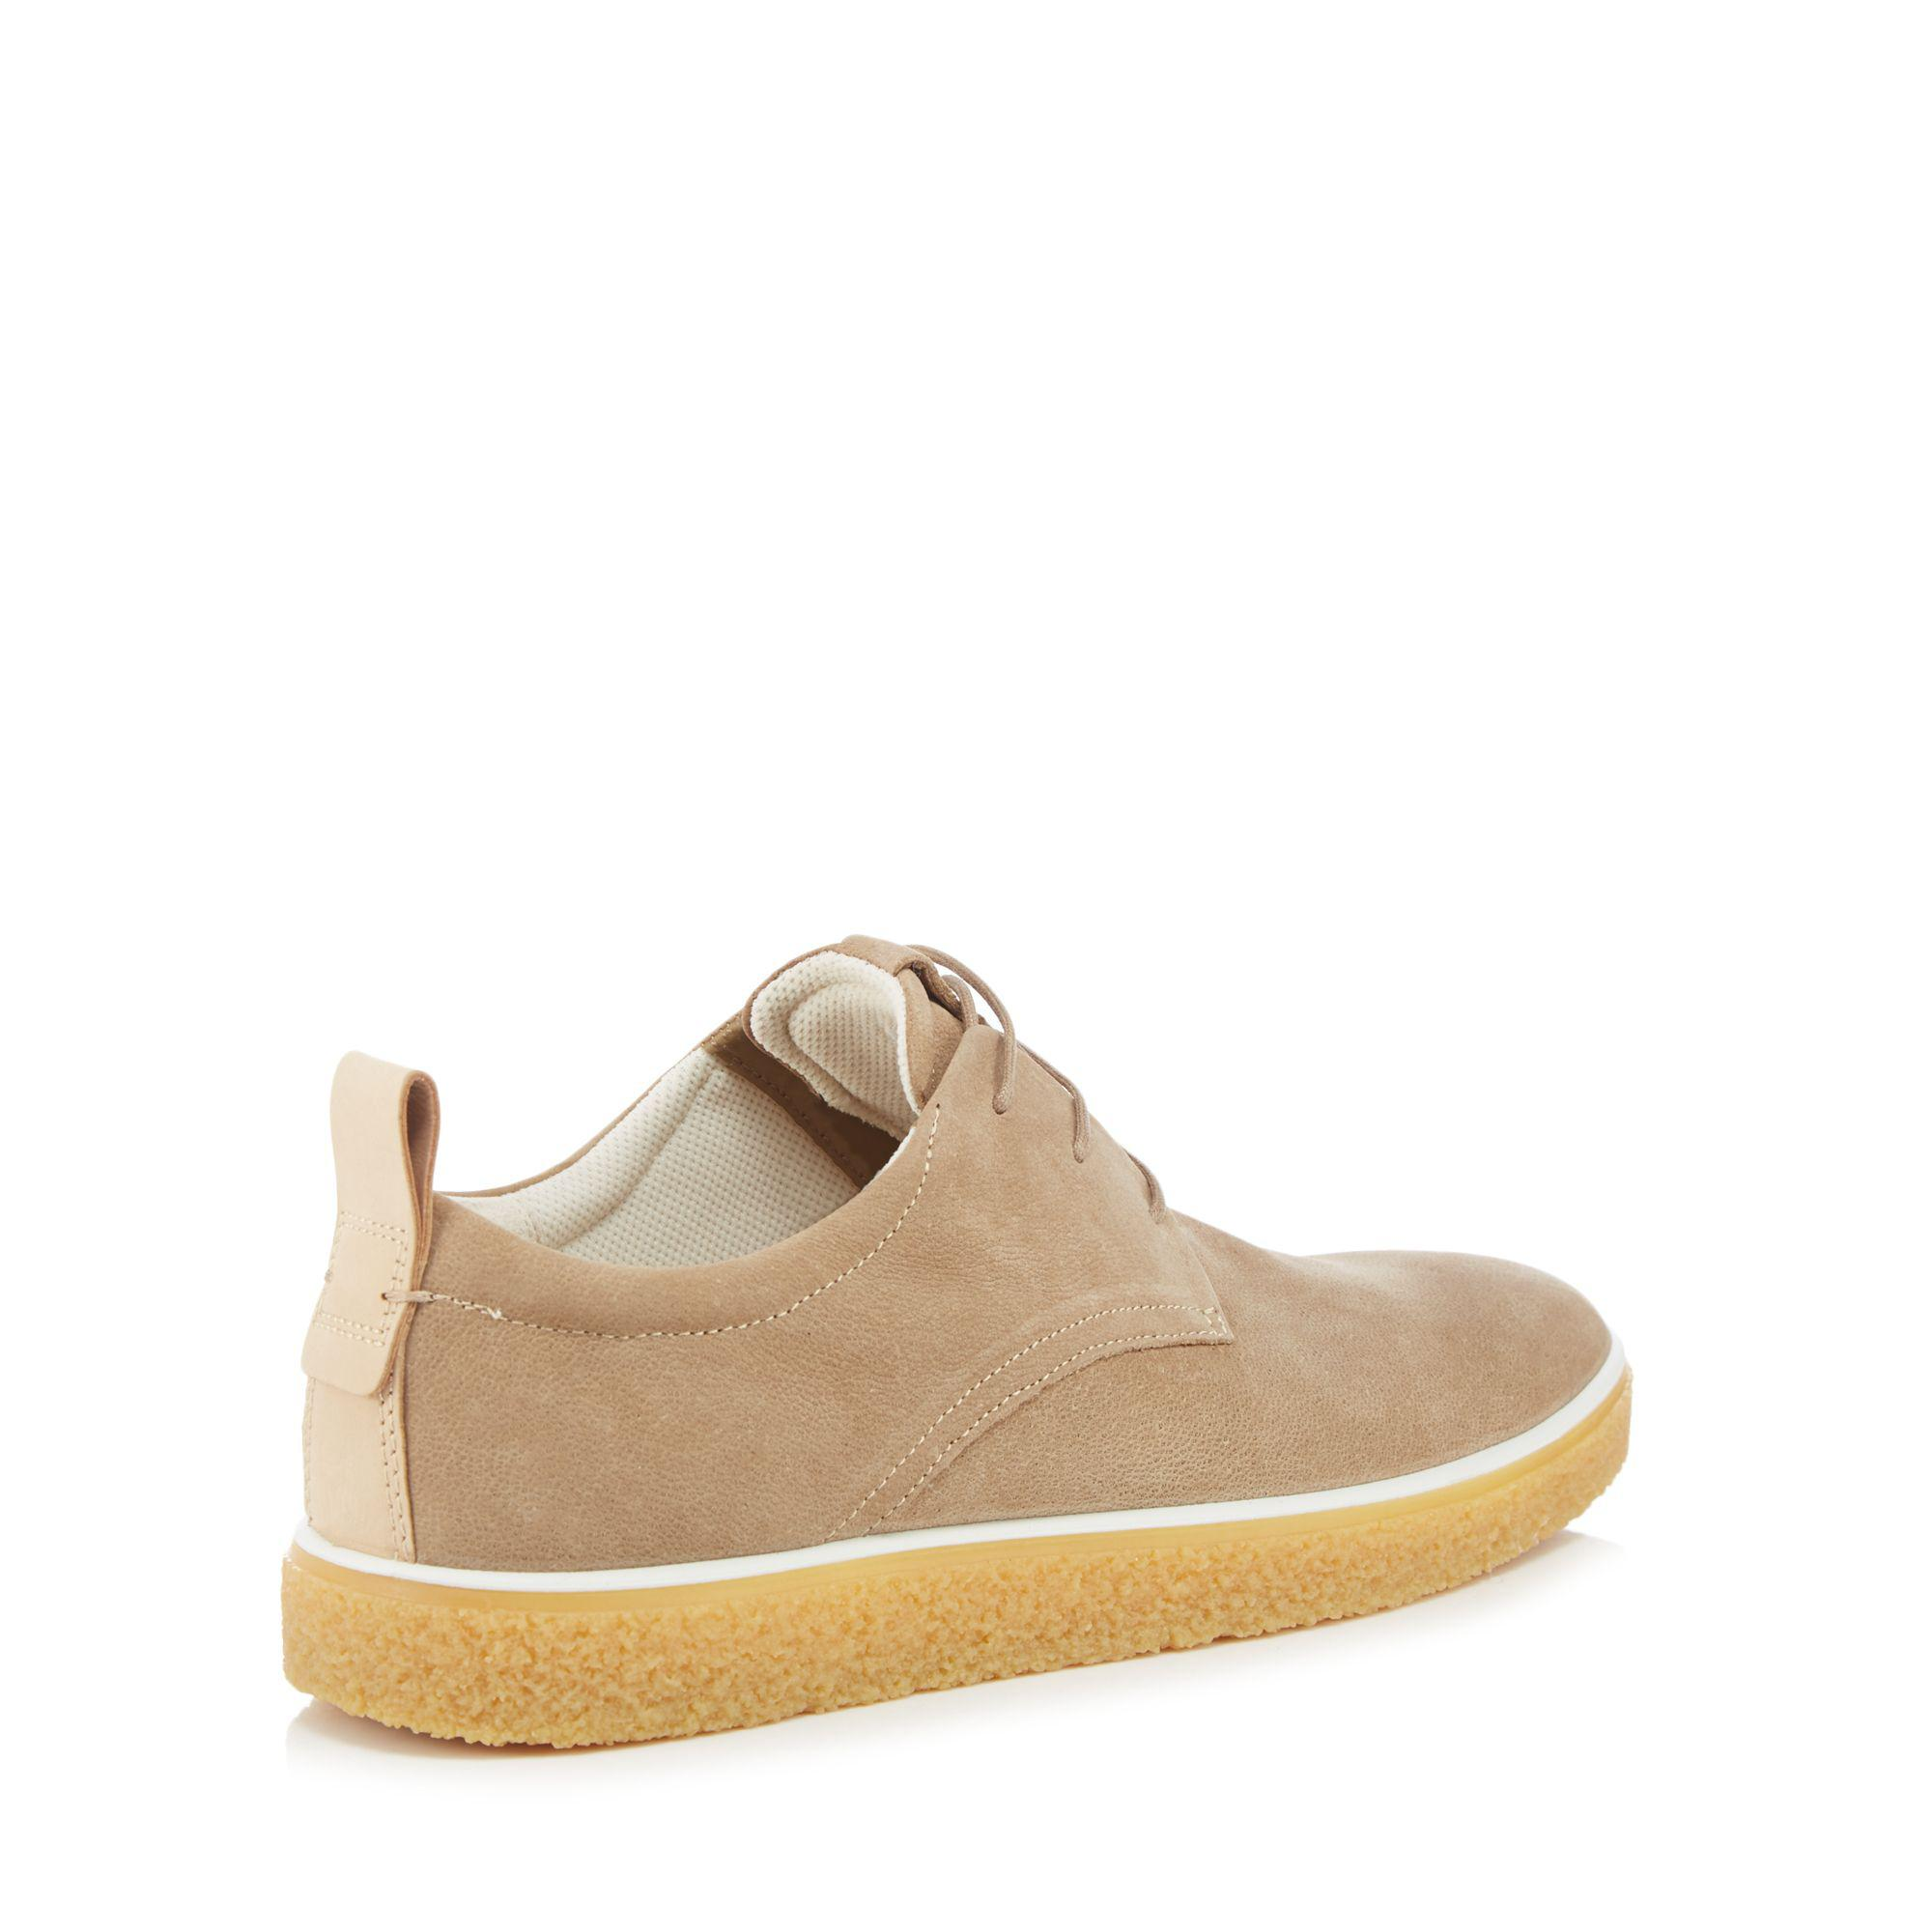 Natural nubuck 'Crepetray' Derby shoes cheap eastbay pictures sale online buy cheap looking for SM0M6NrPzb